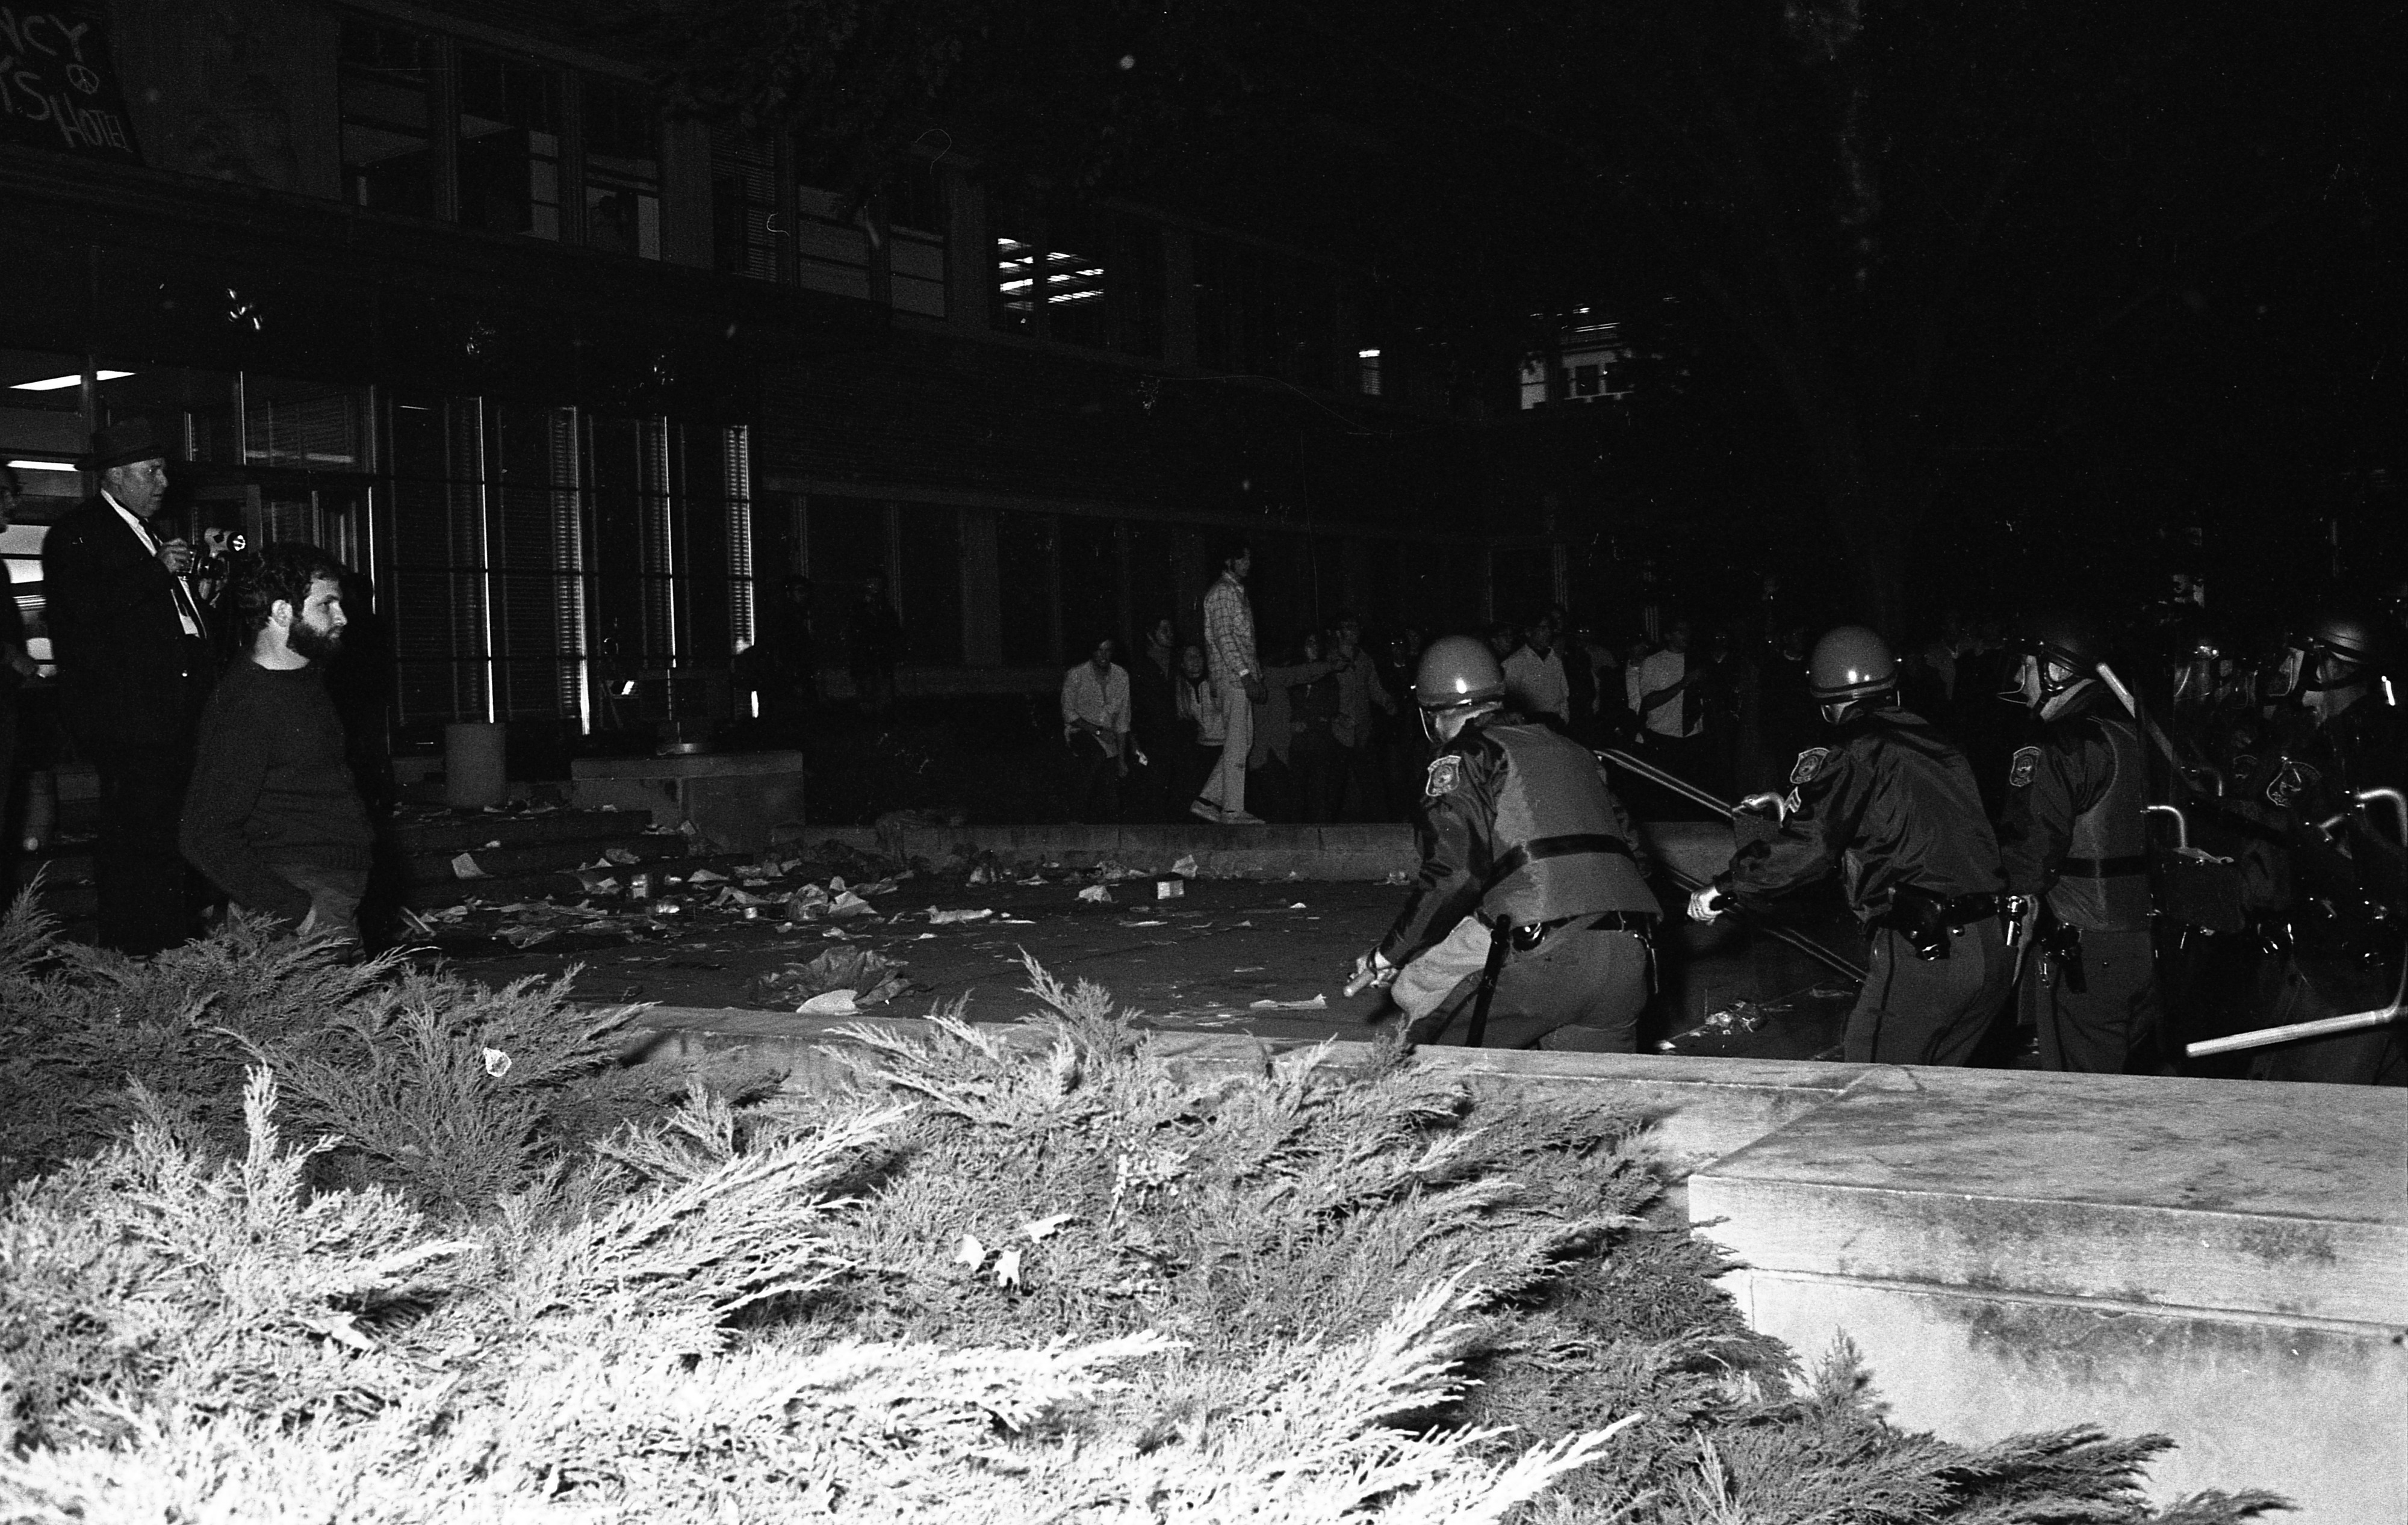 Police Advance On Student Protesters At UM Admin Building, September 25, 1969 image